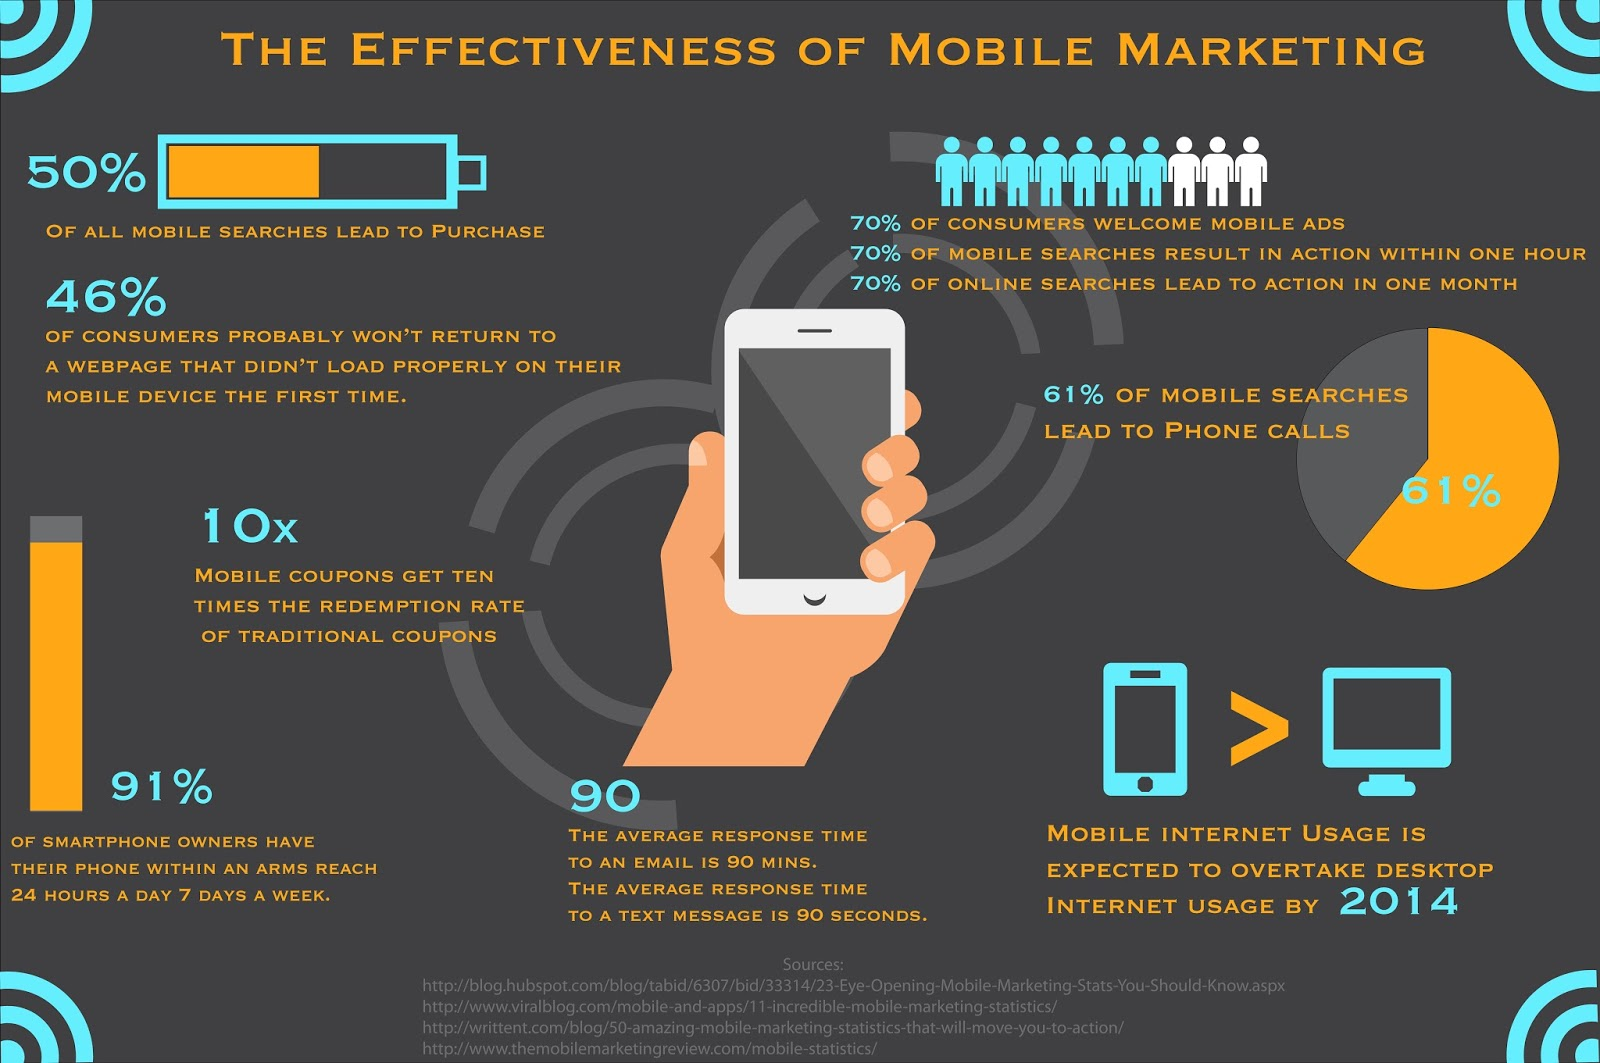 EffectivenessOfMobileMarketing2